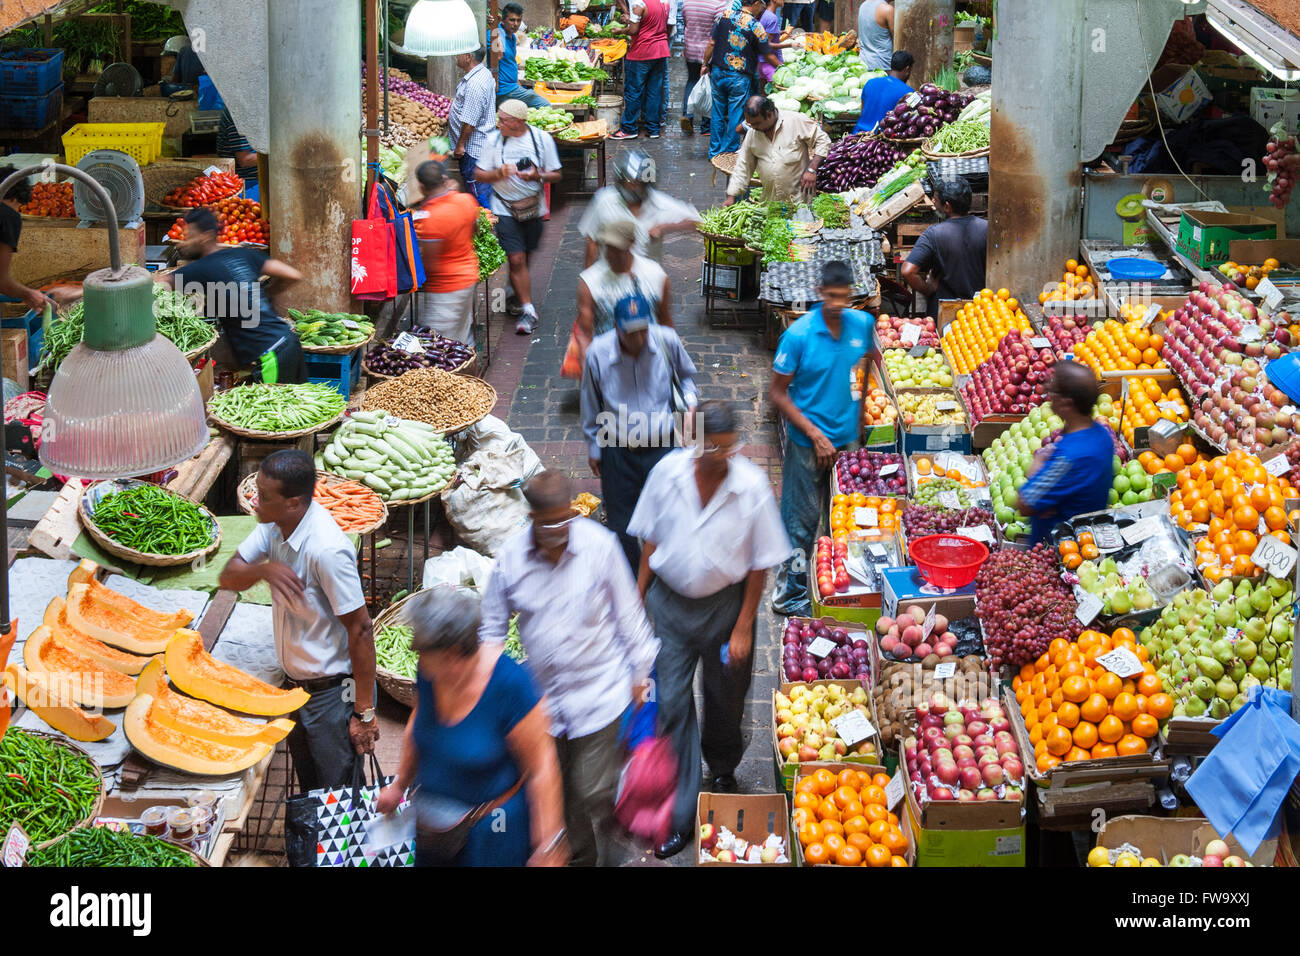 The market in port louis the capital of mauritius stock photo 101636938 alamy - Mauritius market port louis ...